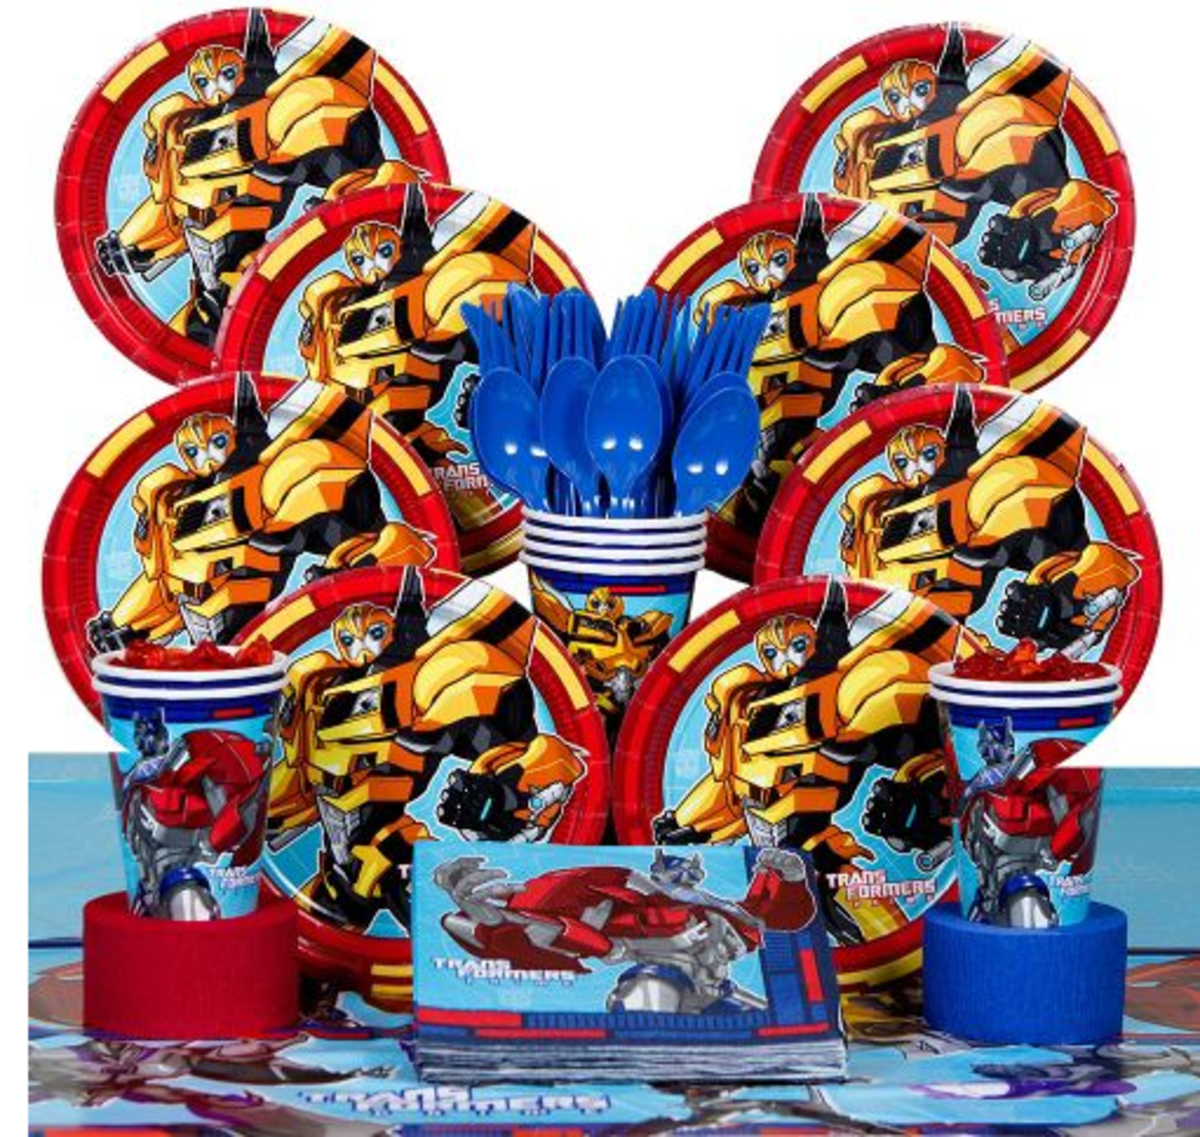 Transformers Birthday Party Supplies and Cakes